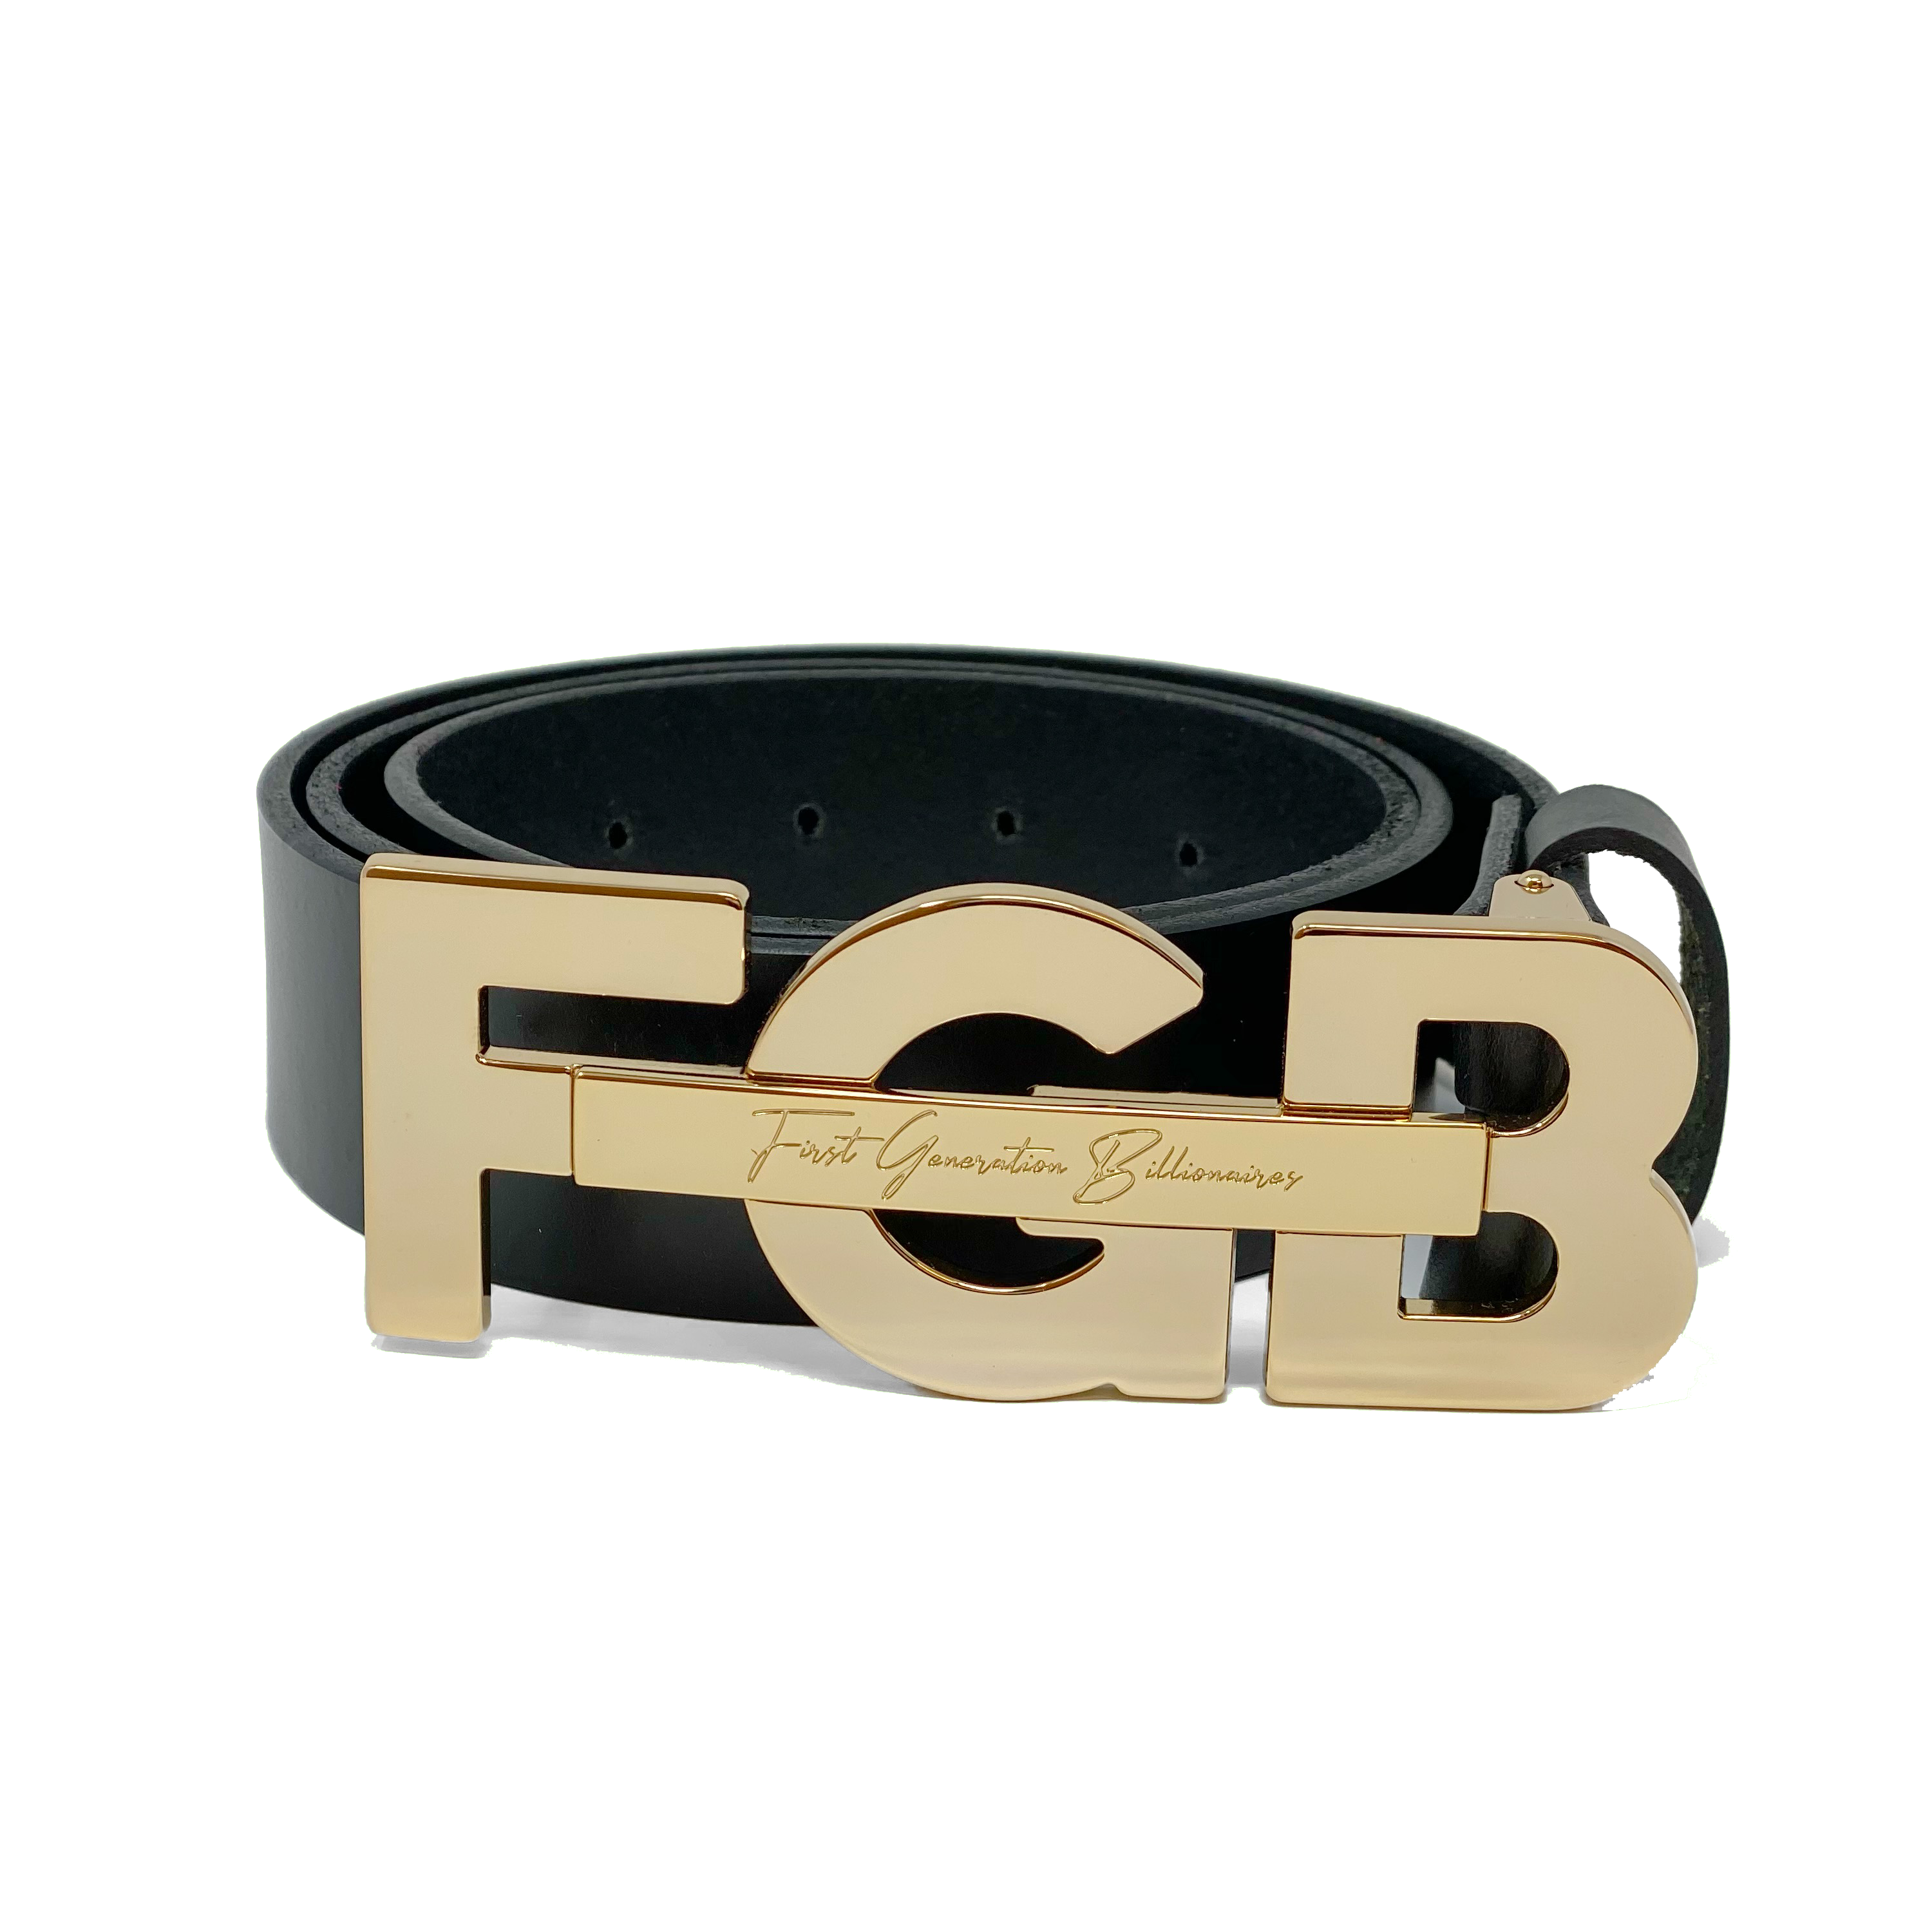 "Formal FGM Initial Belt 1 1/4"" (32mm) - BLACK"